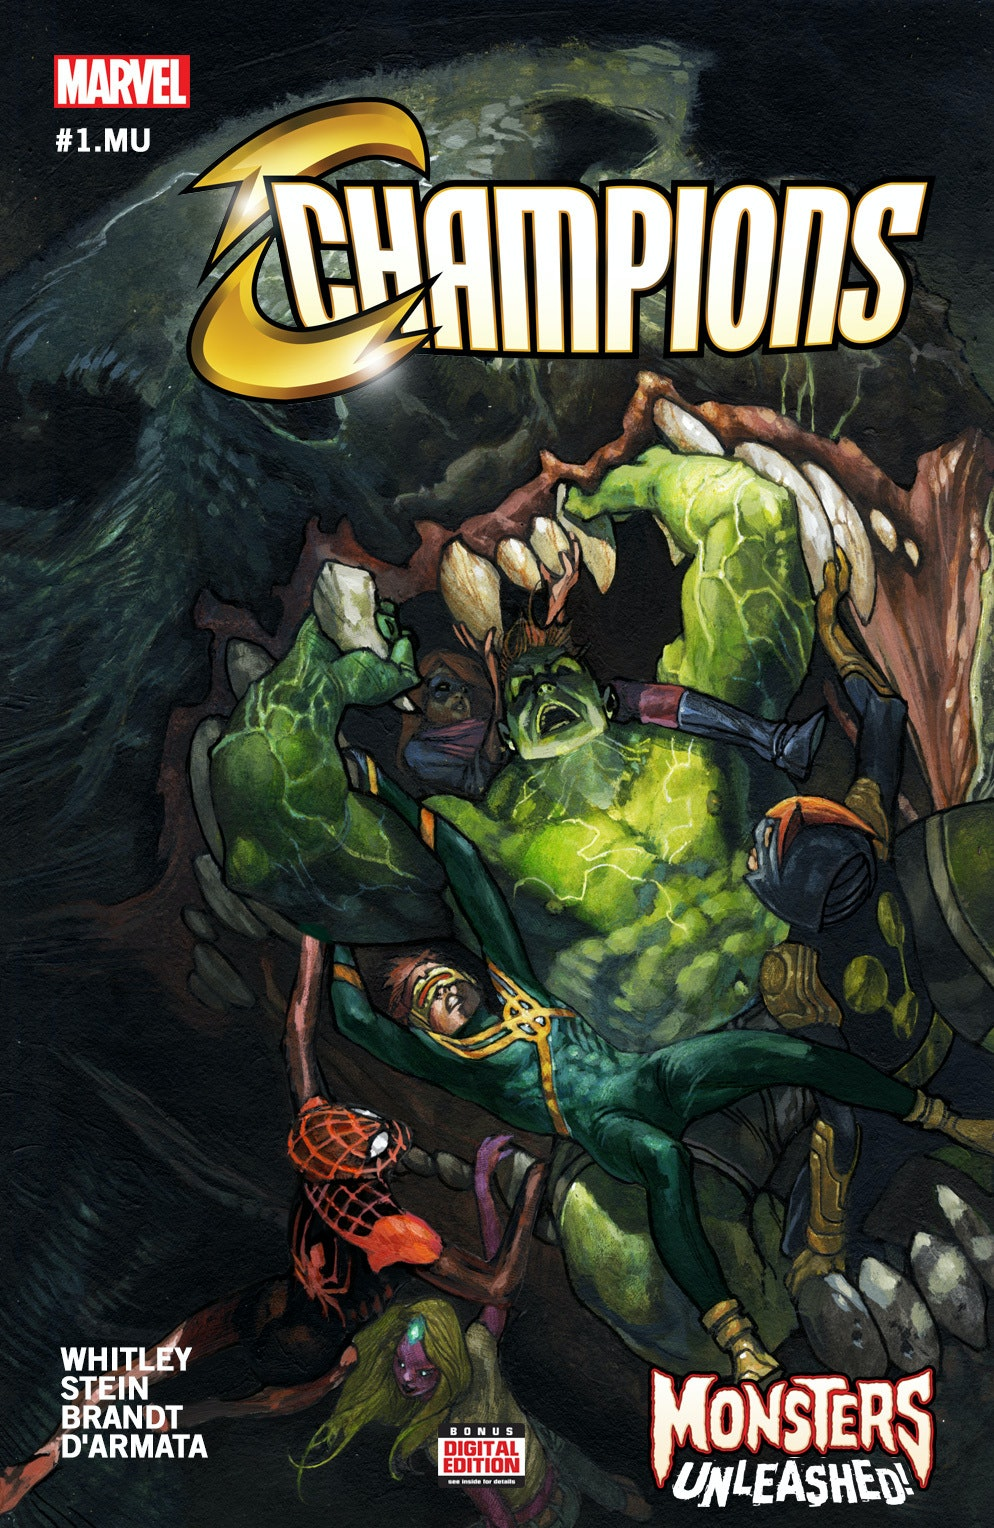 Champions Monsters Unleashed cover for Marvel